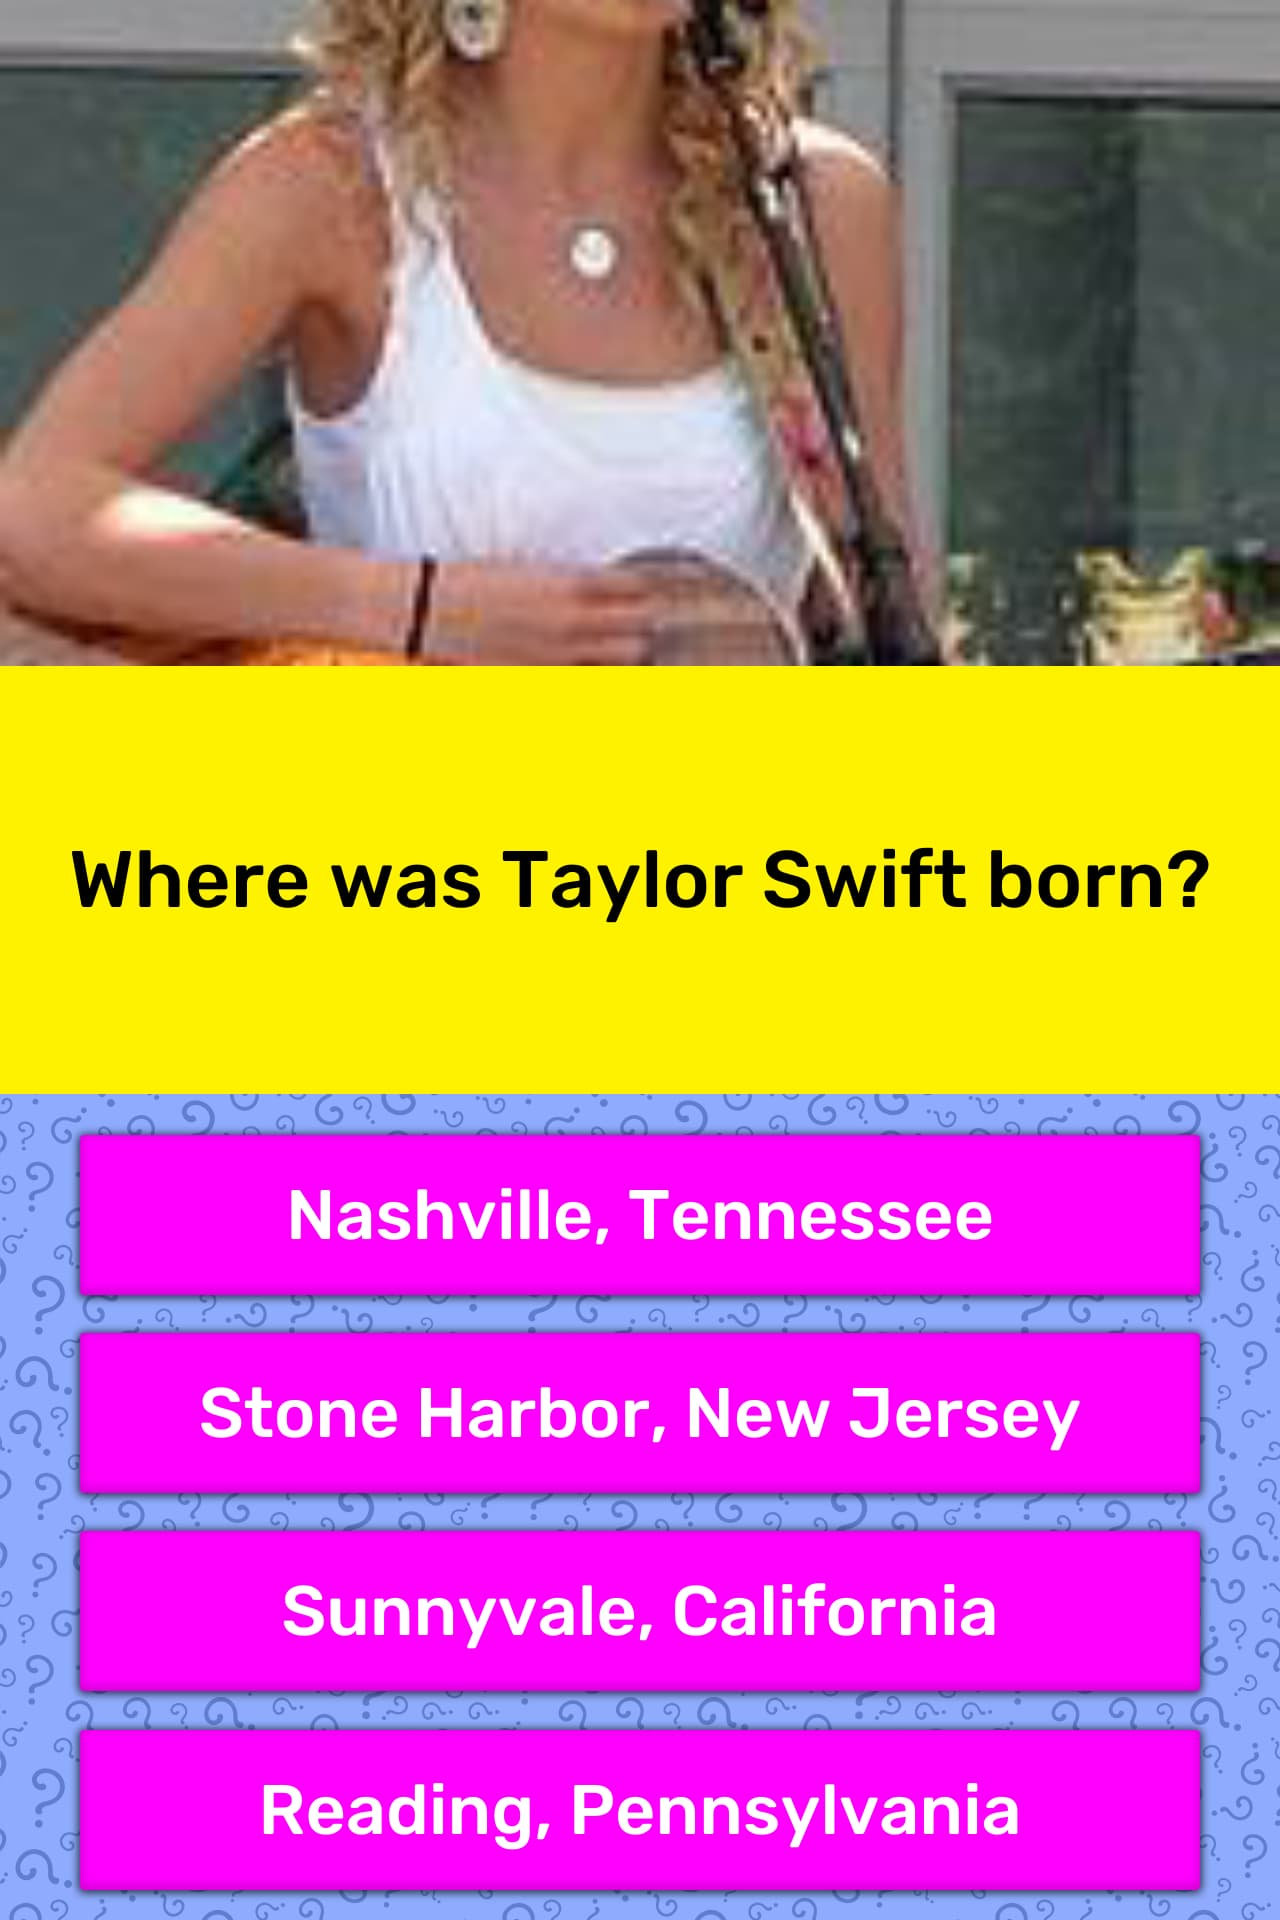 Where taylor swift was born